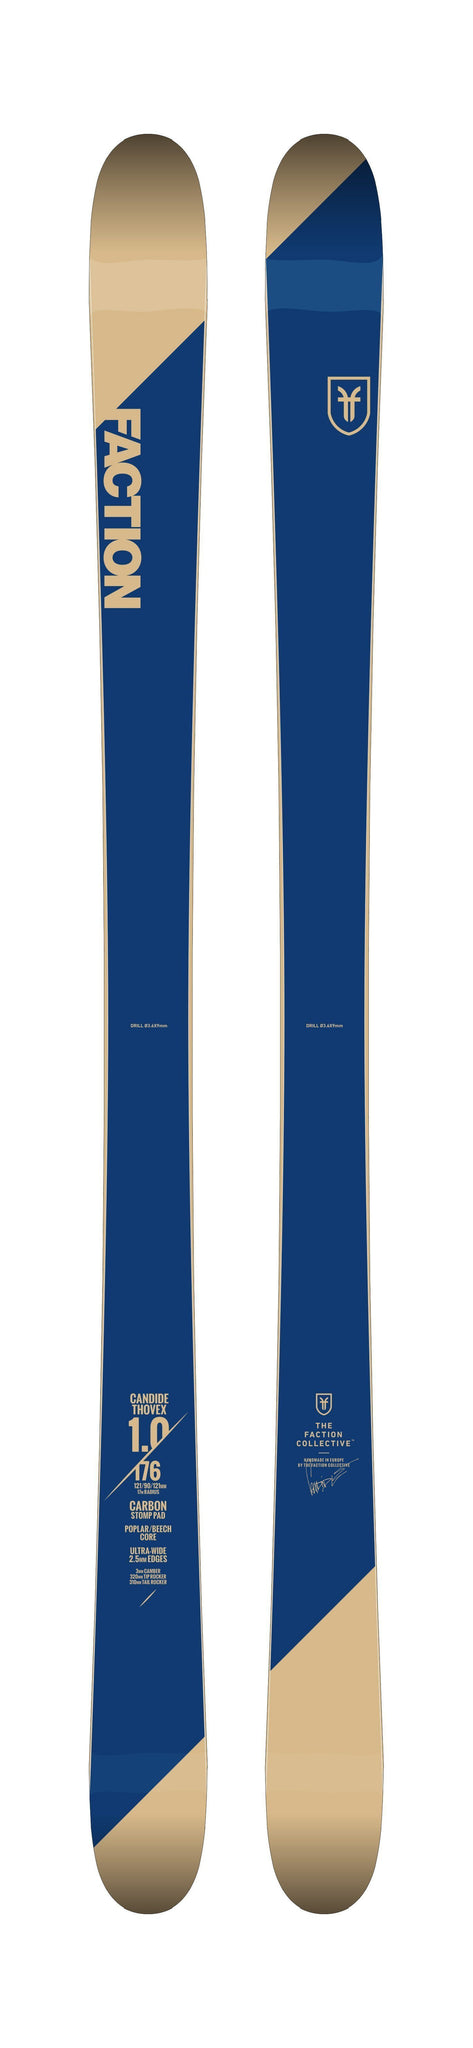 Atomic Punx Five Skis 2019